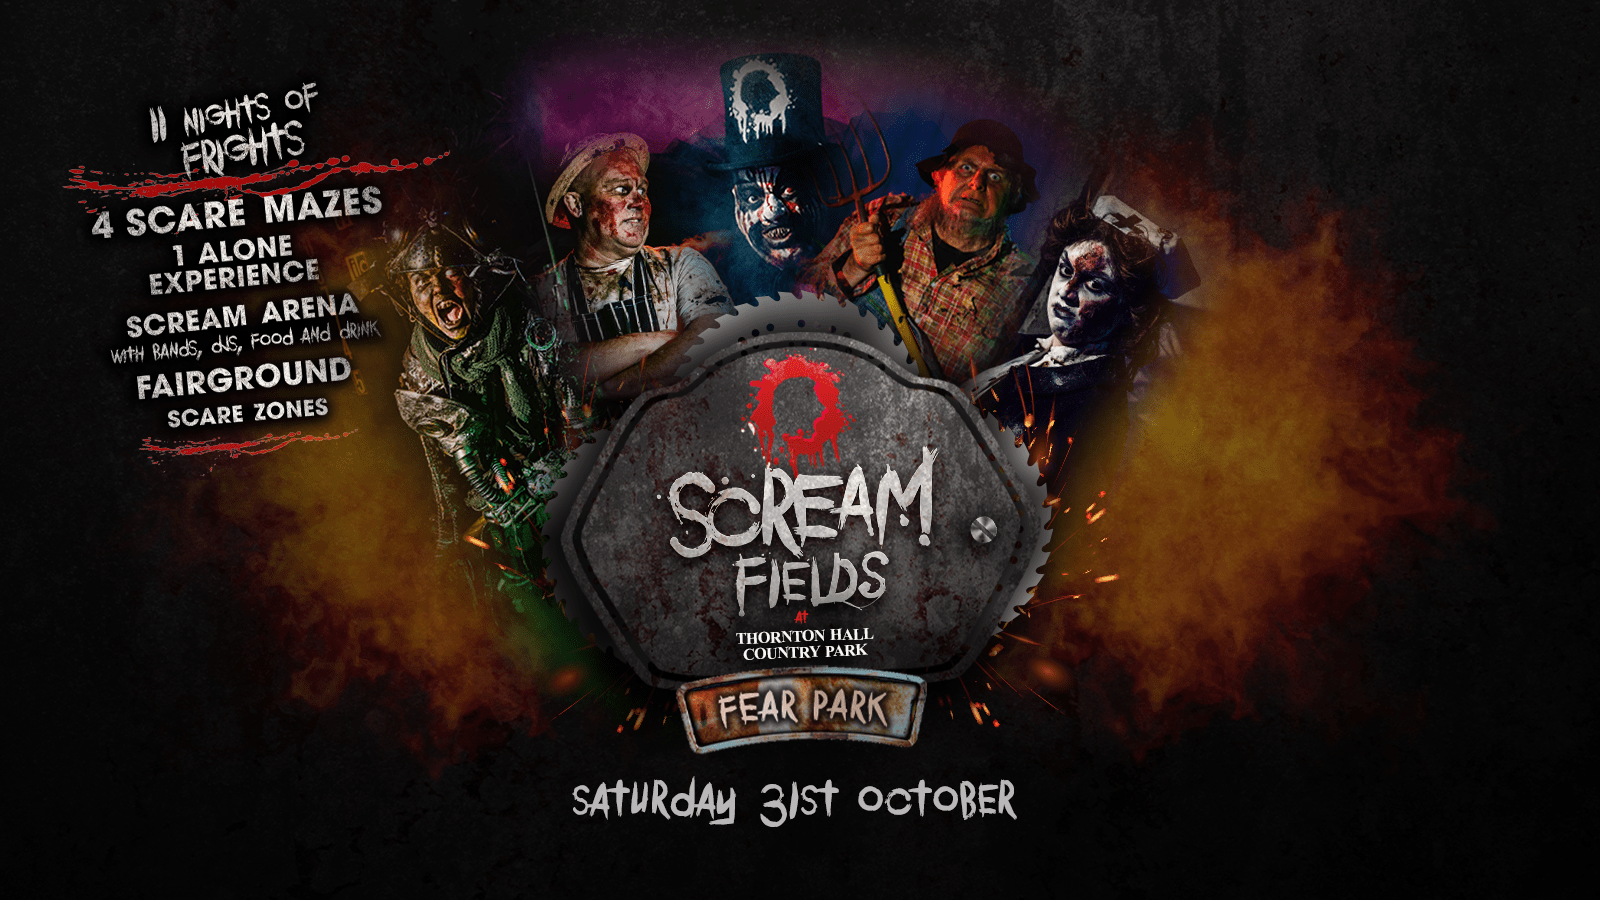 6.00PM – Screamfields: Saturday 31st October 2020